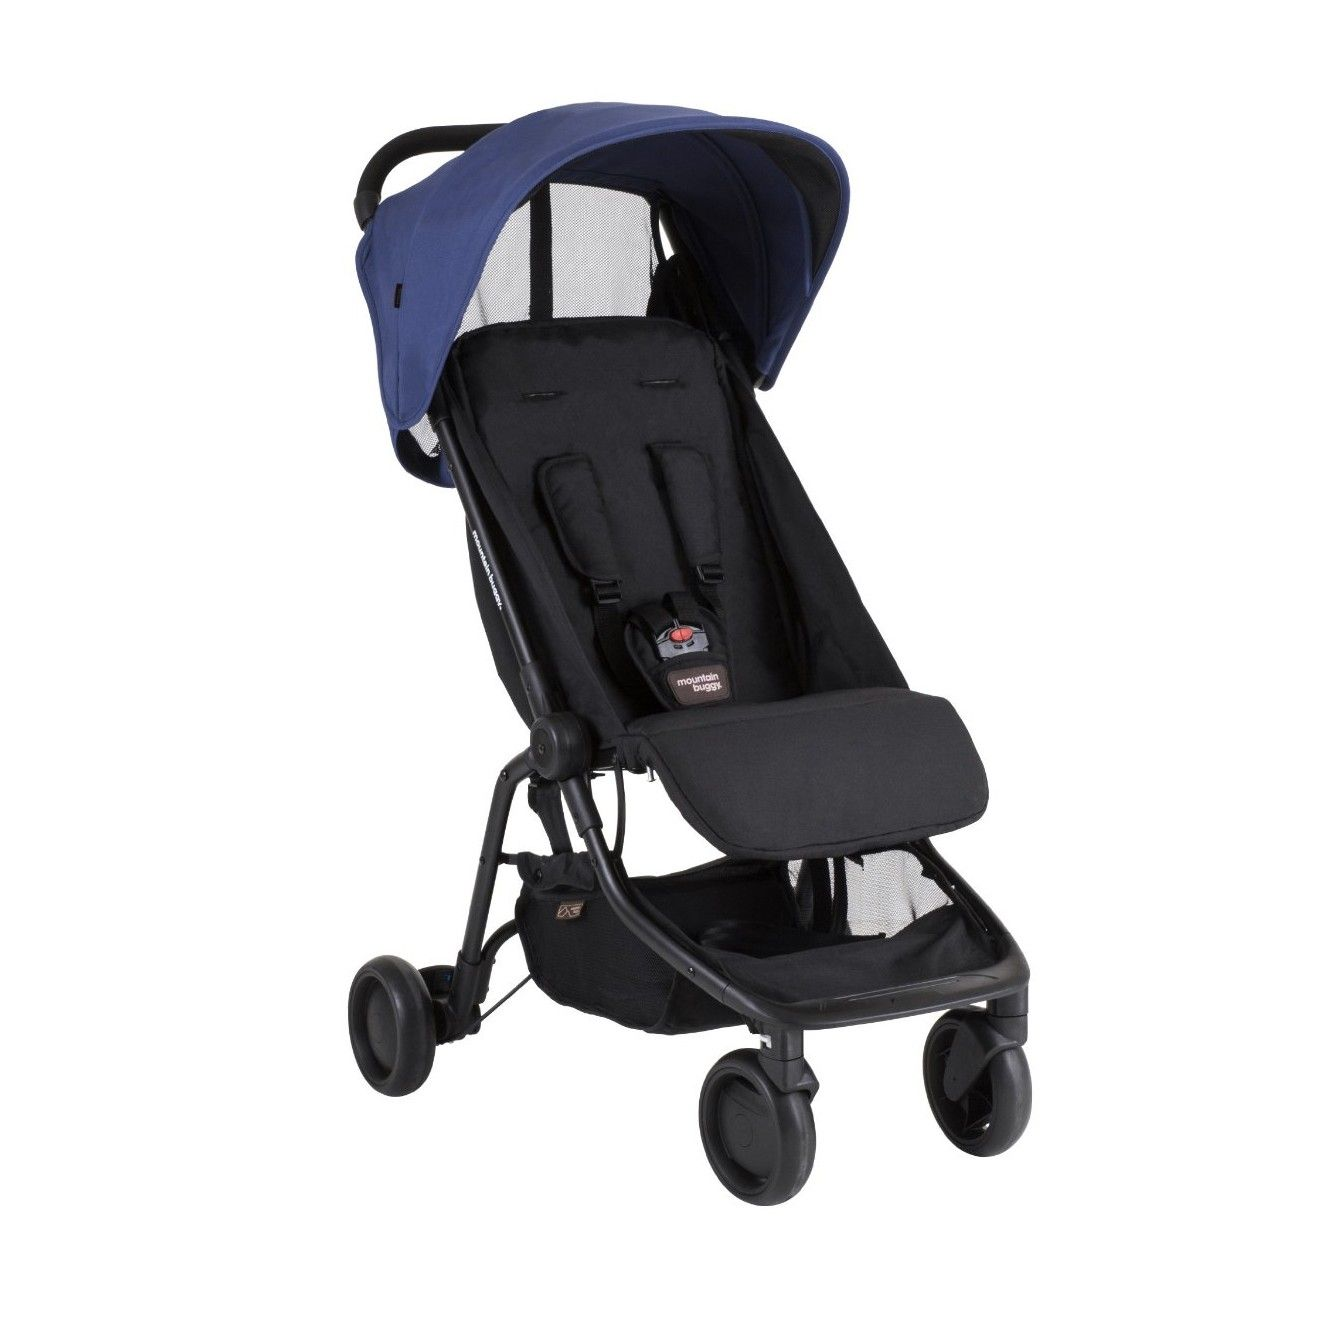 Travel with your Nano Stroller